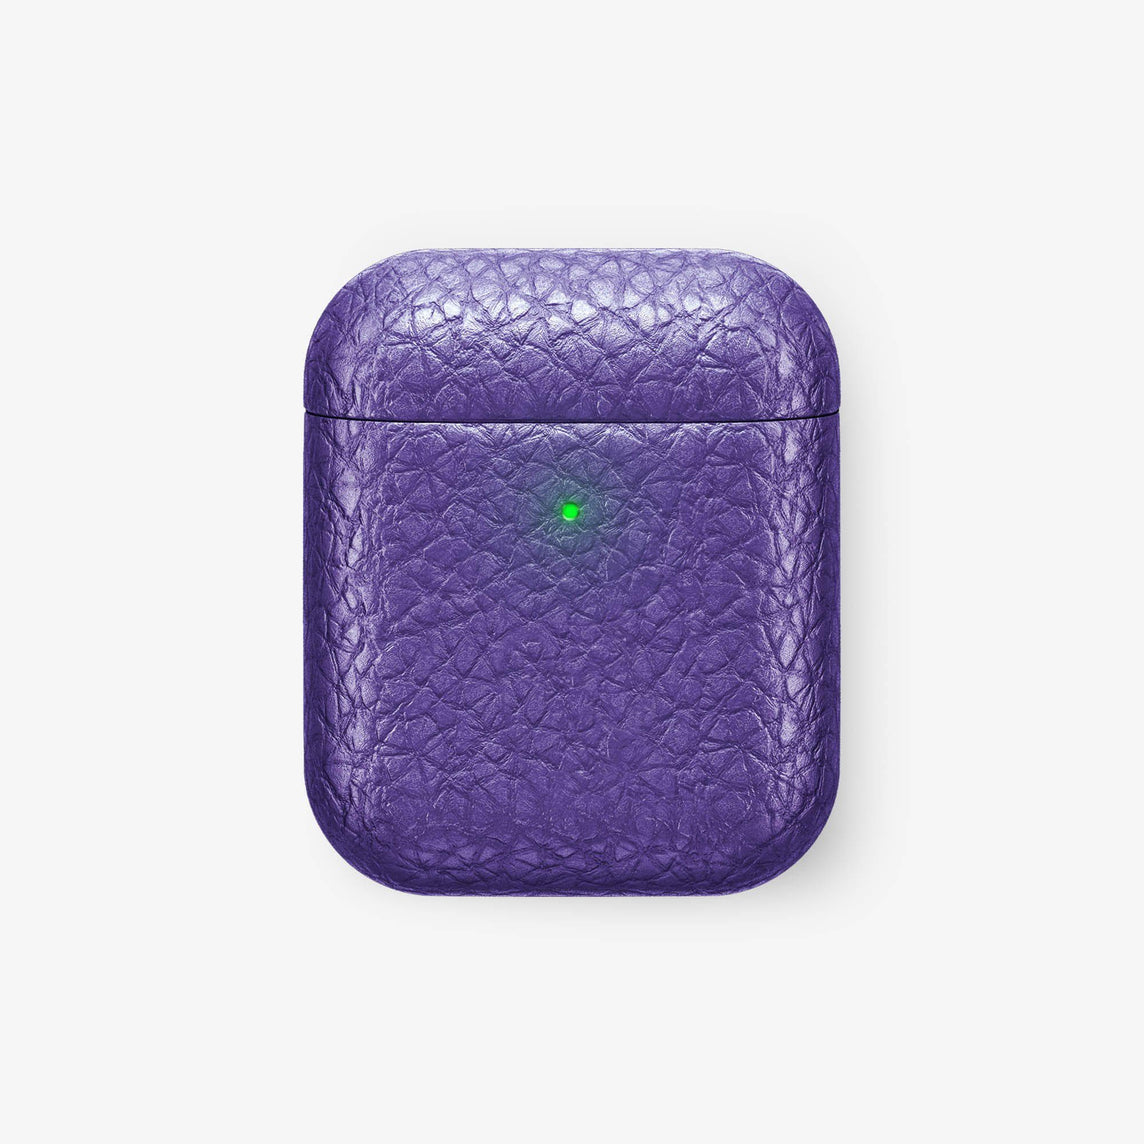 Calfskin [Hadoro AirPods] [model:airpods-with-w-charging] [colour:purple] [finishing:stainless-steel] without-personalization